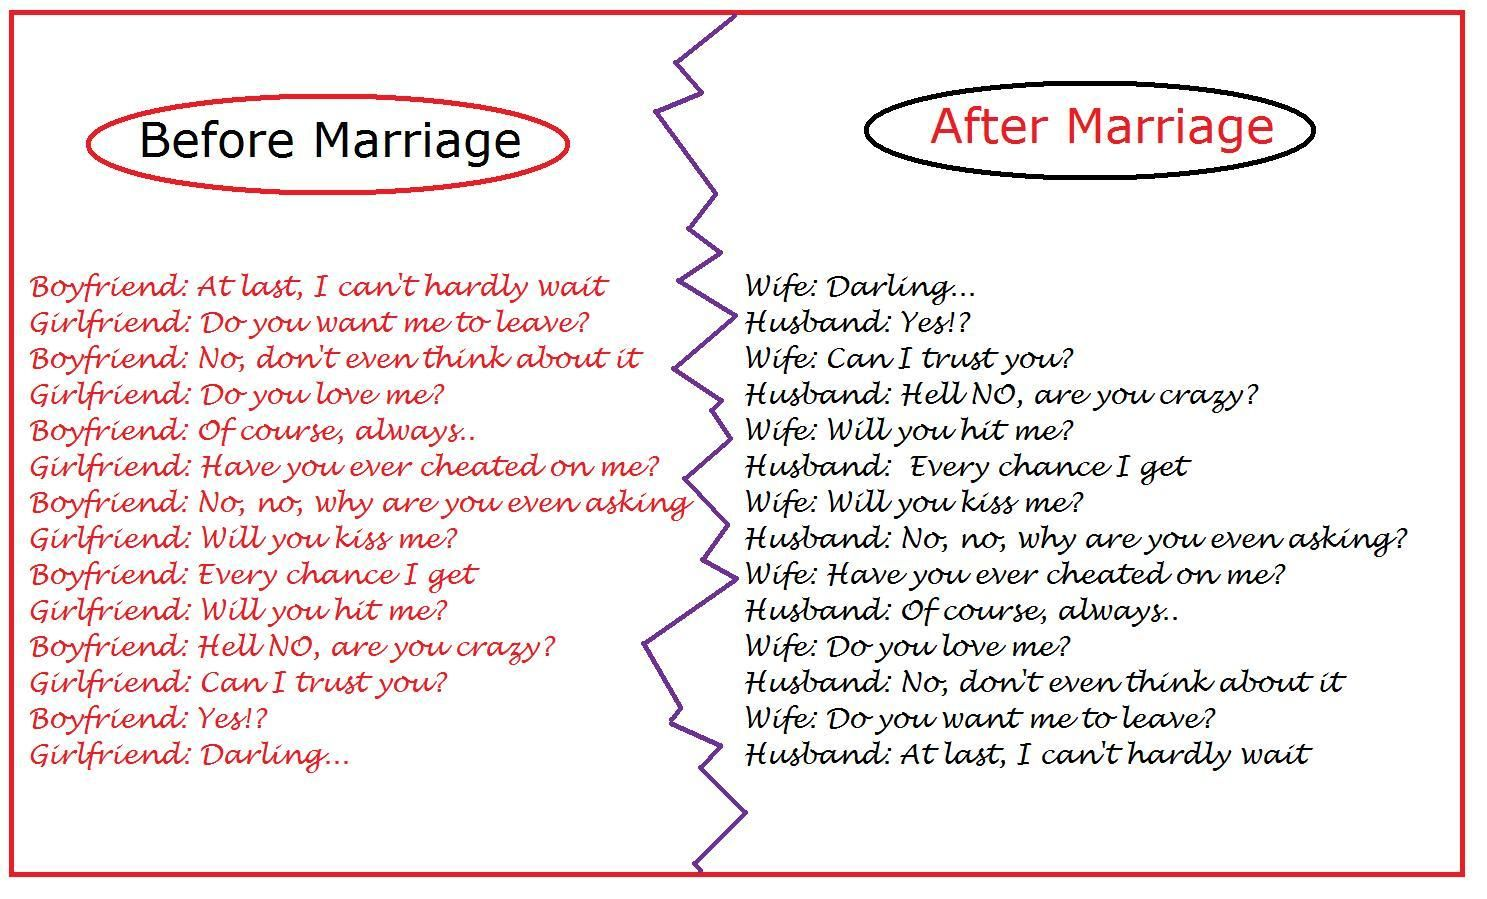 true love relationship images after and before marriage